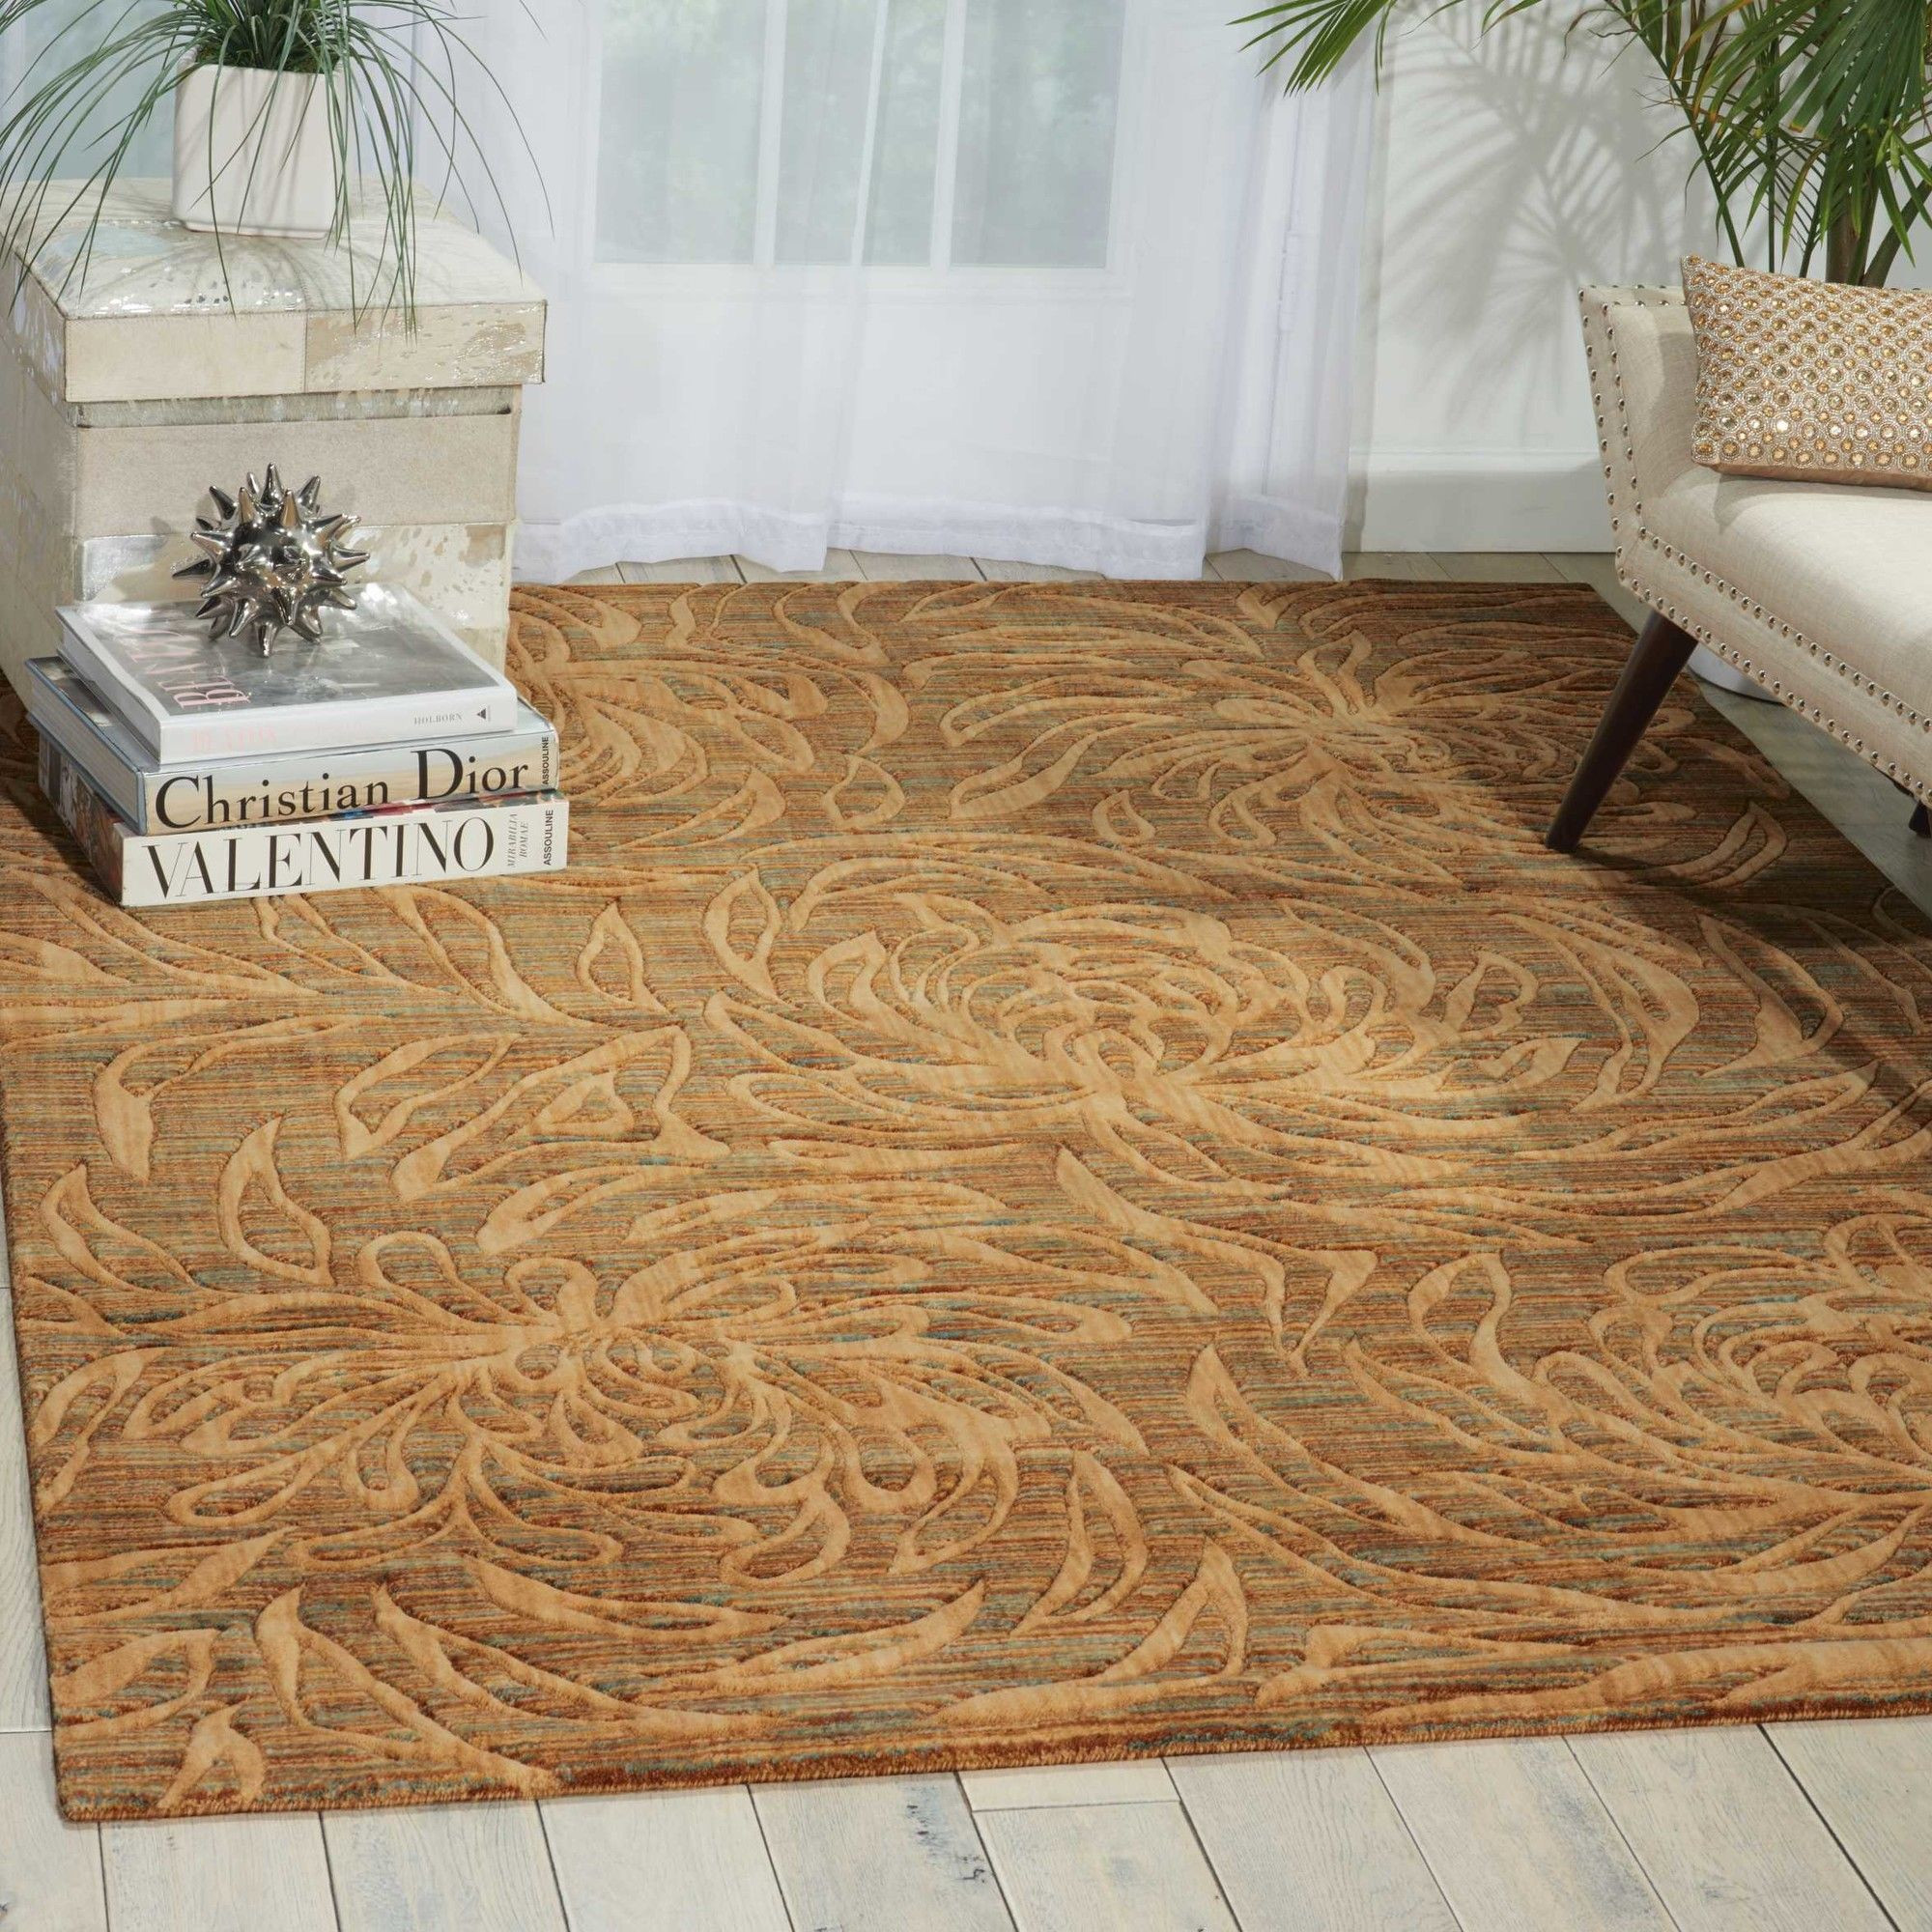 Ts Hardwood Flooring Of Radiant Impressions Beige Rug Products Pinterest for Radiant Impressions Beige Rug